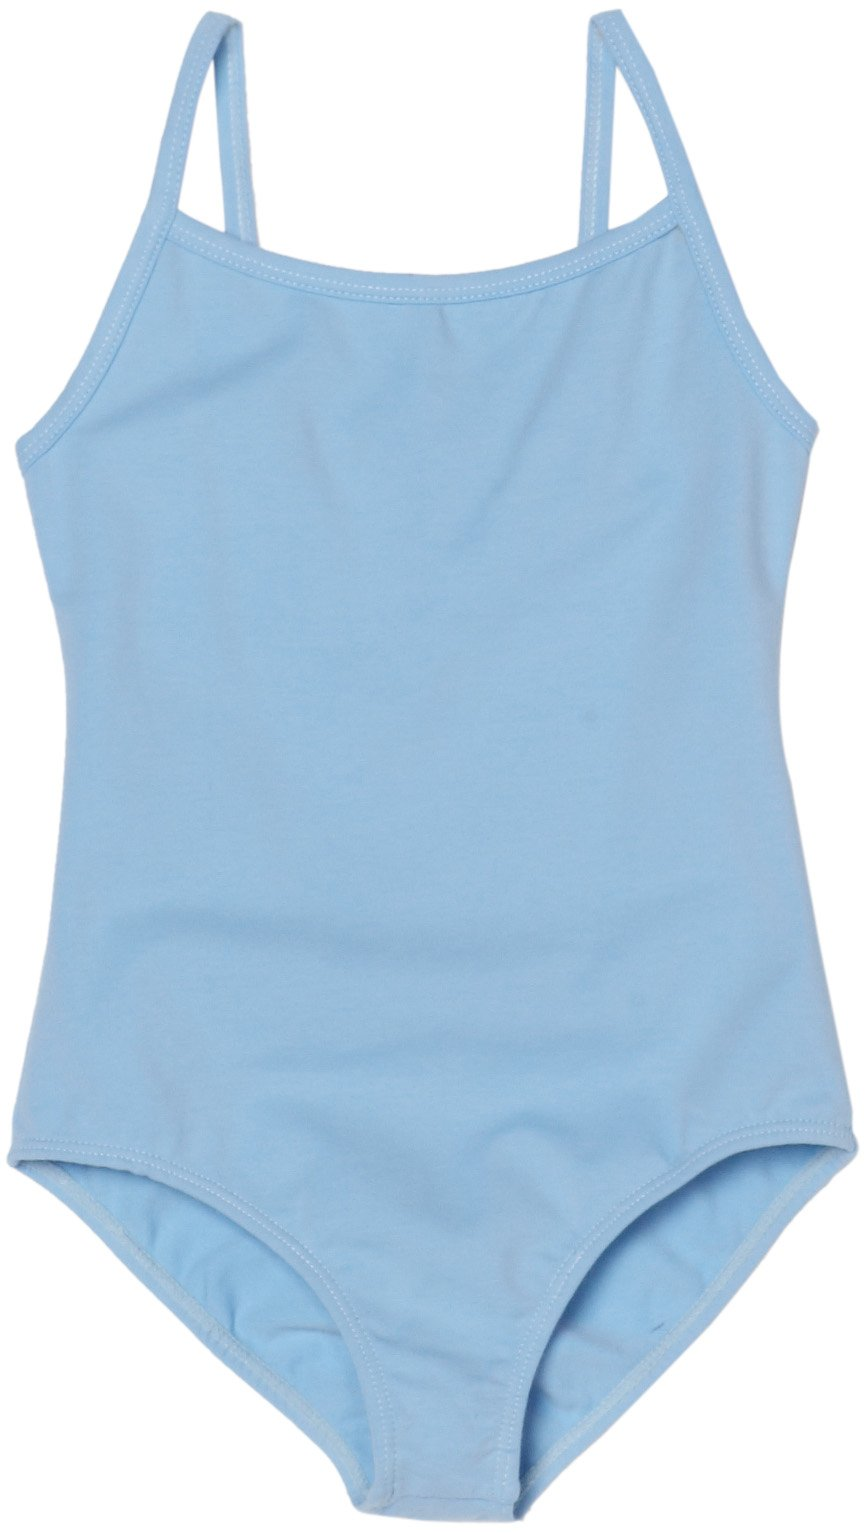 Sansha Little Girls' Stacie Camisole Leotard, Light Blue, Toddler 2-4